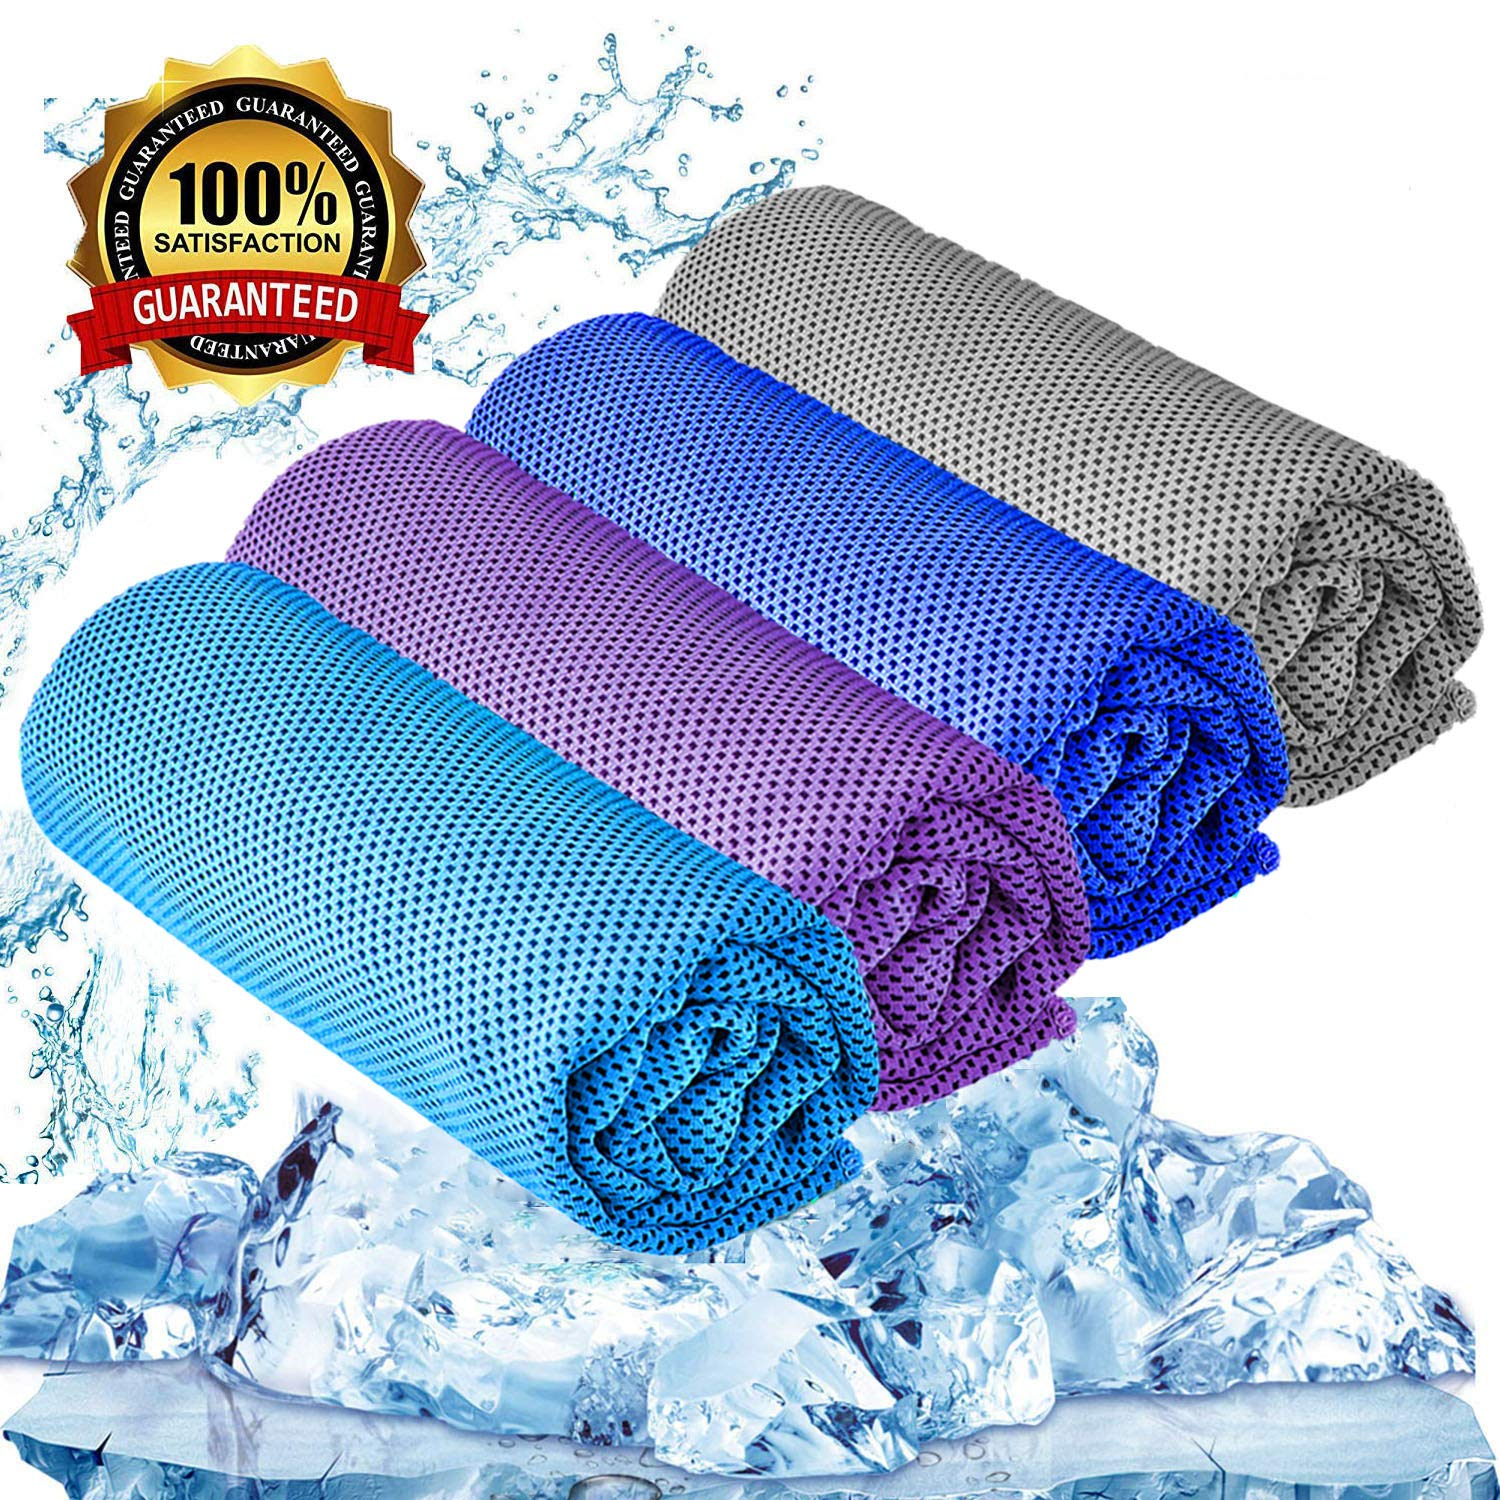 YQXCC Cooling Towel 3 Pcs (47''x12'') Microfiber Towel for Instant Cooling Relief, Cool Cold Towel for Yoga Golf Travel Gym Sports Camping Football & Outdoor Sports (Light Blue/Purple/Dark Blue/Gray) by YQXCC